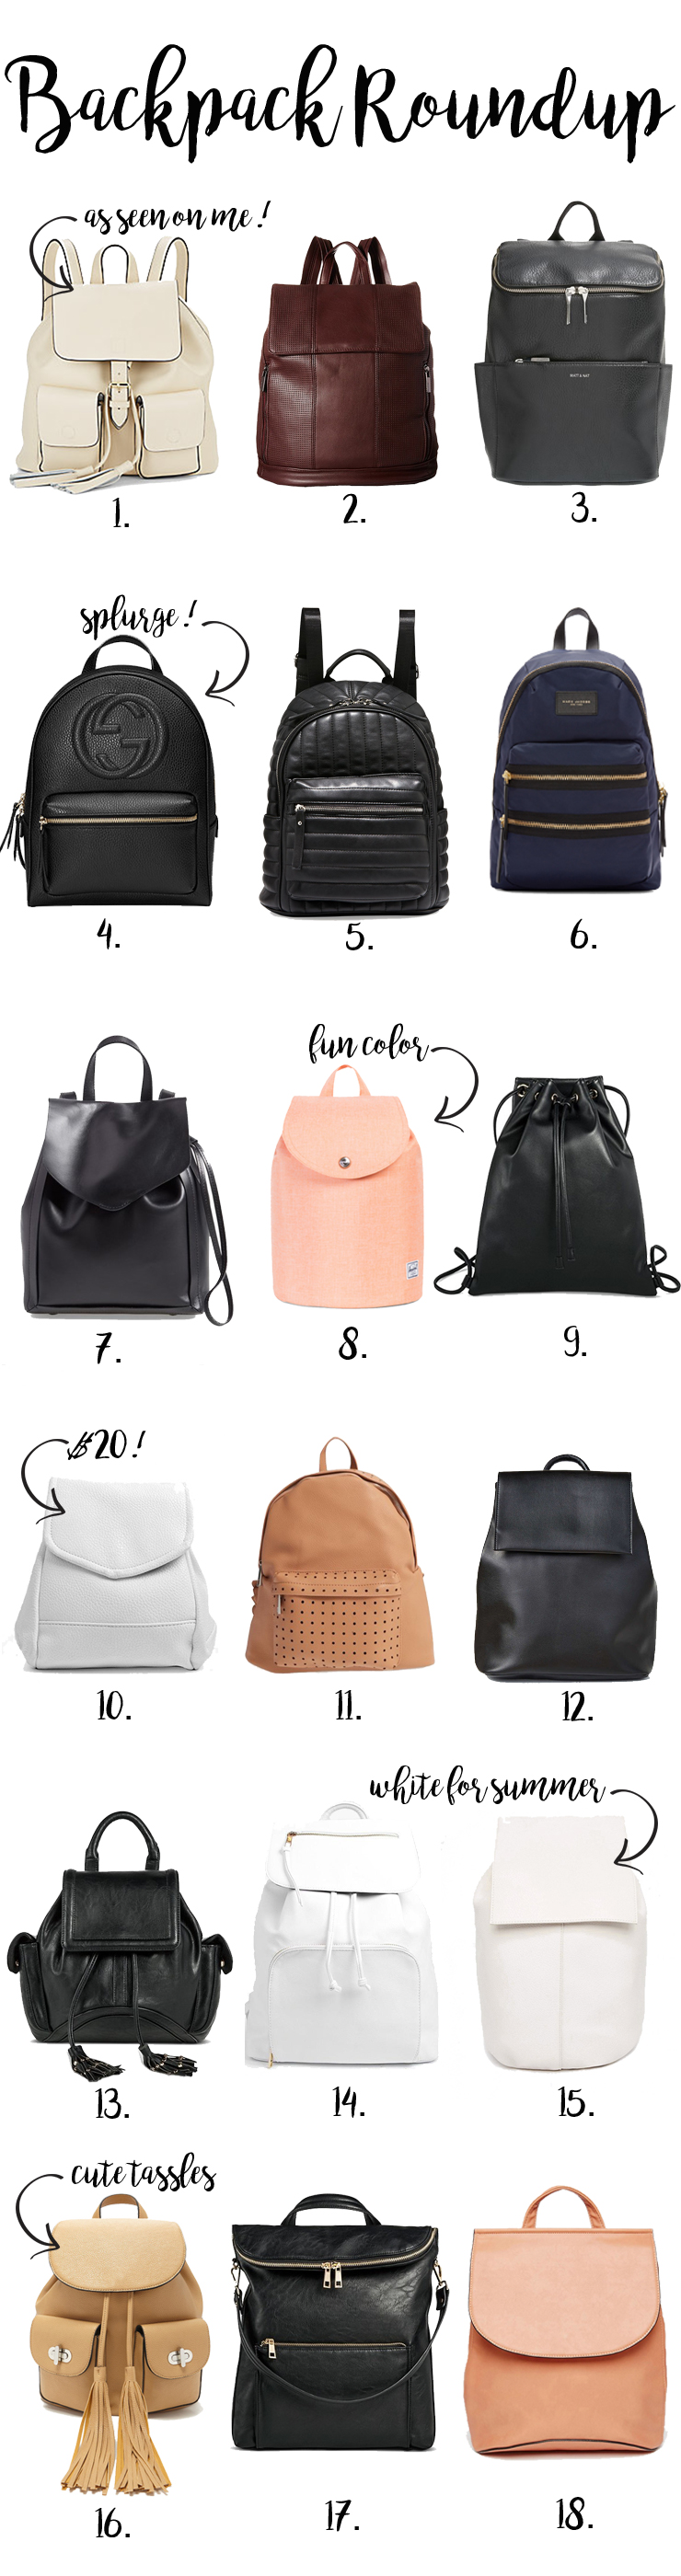 backpack roundup